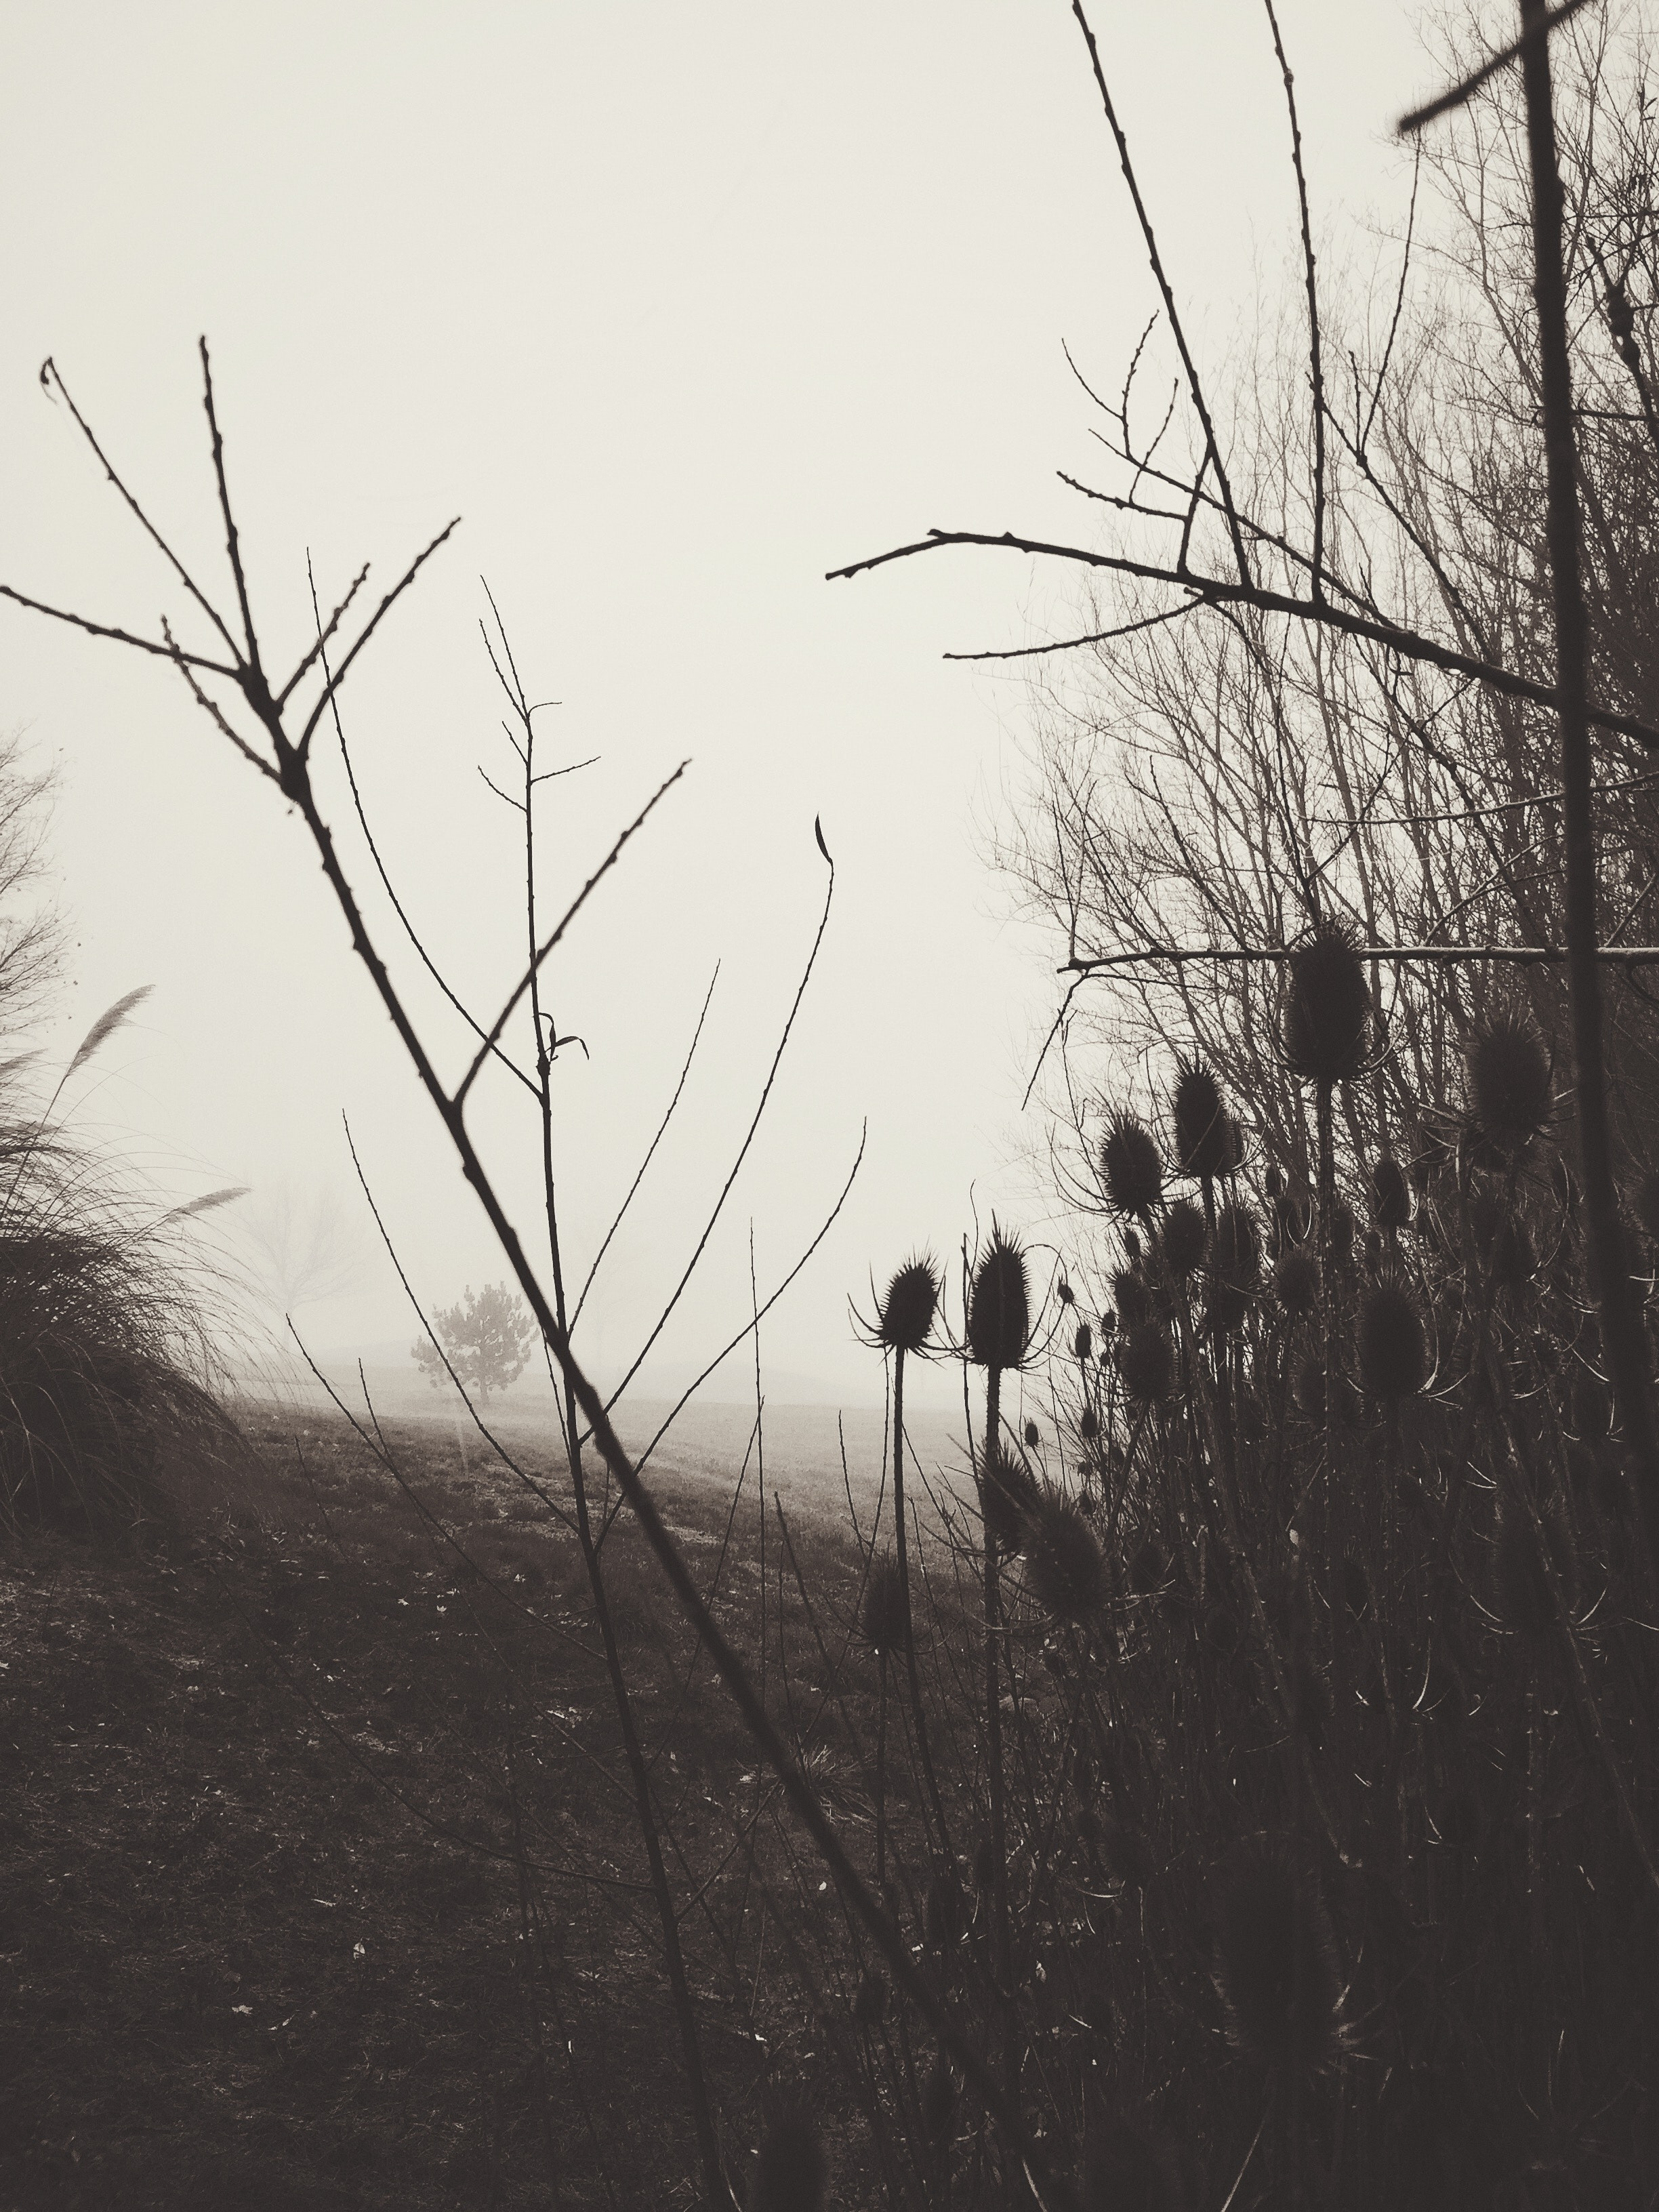 Grayscale Photo of Bush Covered With Fog, Cold, Environment, Fog, Foggy, HQ Photo